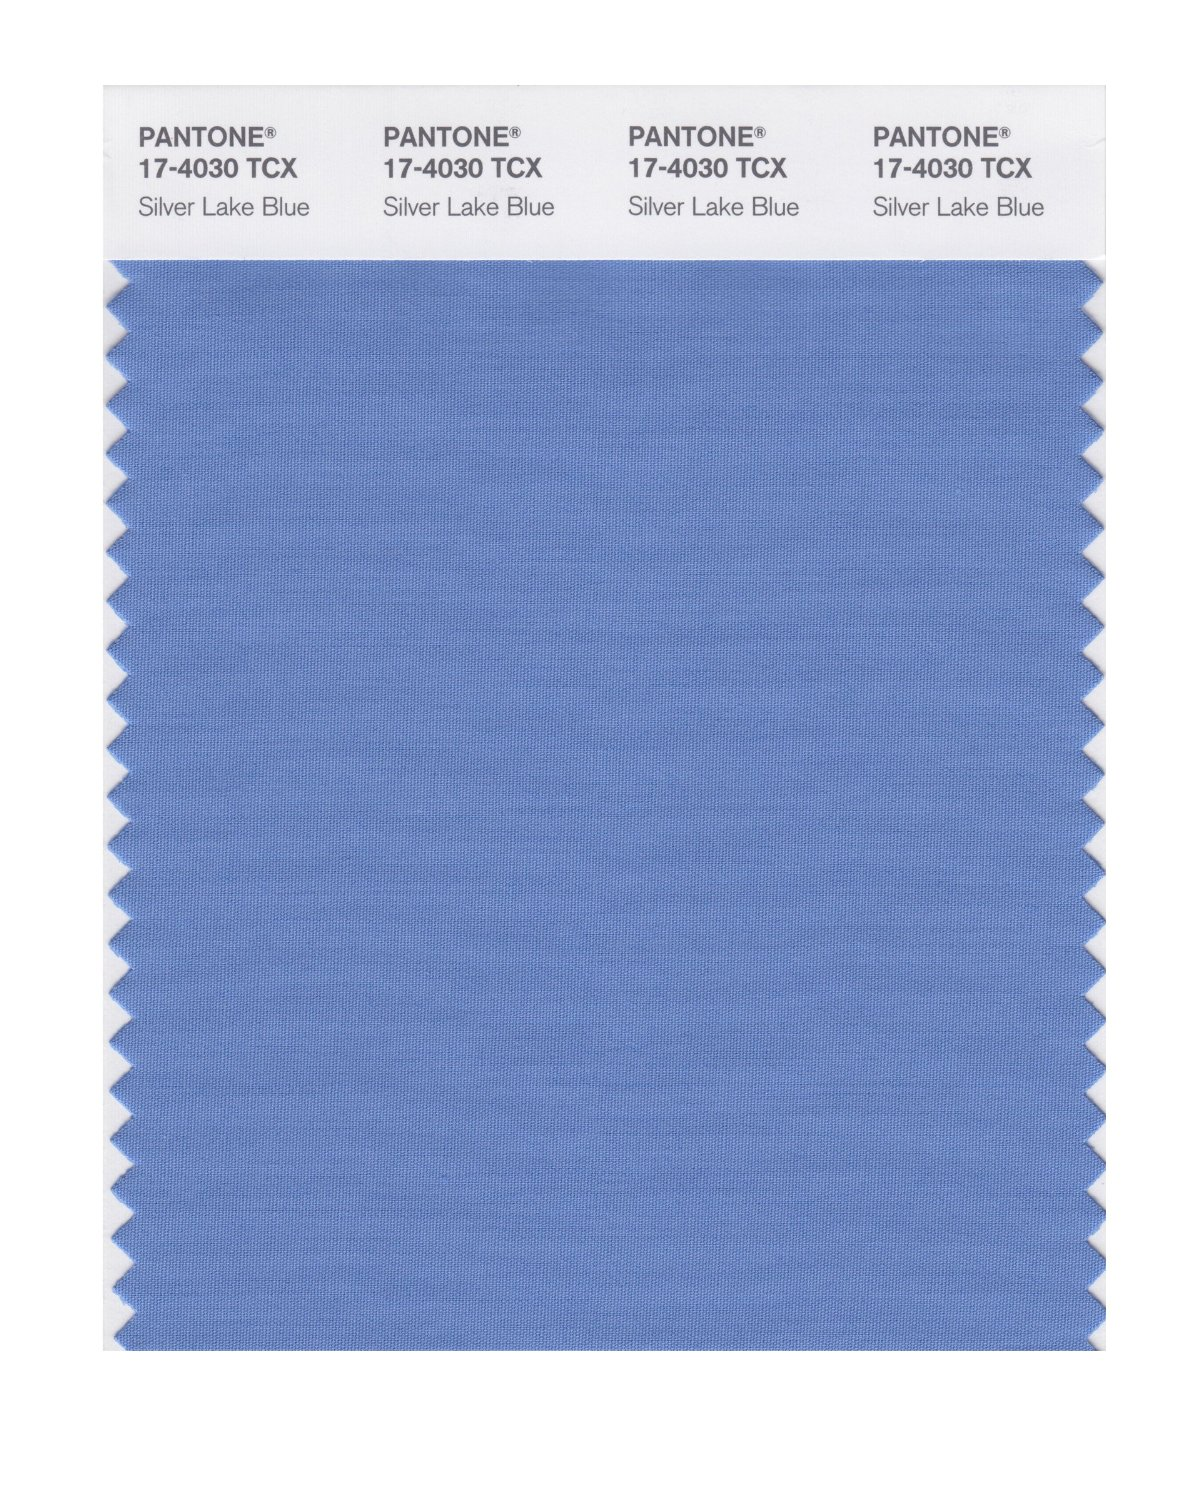 Pantone Smart Swatch 17-4030 Silver Lake Blue